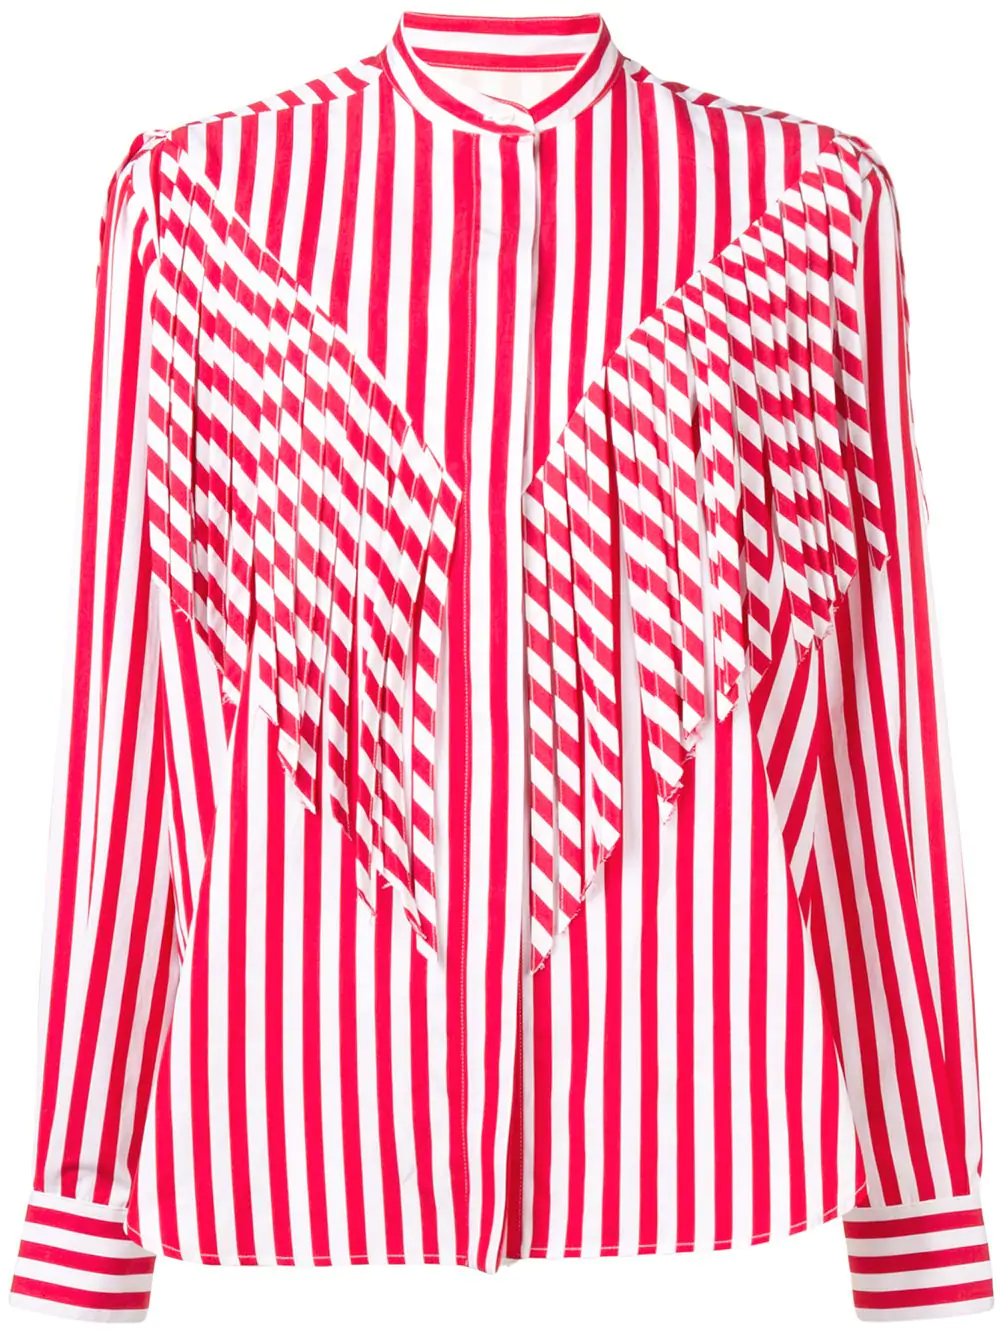 9d361c824af4f8 Msgm Striped Top With Fringe In Red | ModeSens